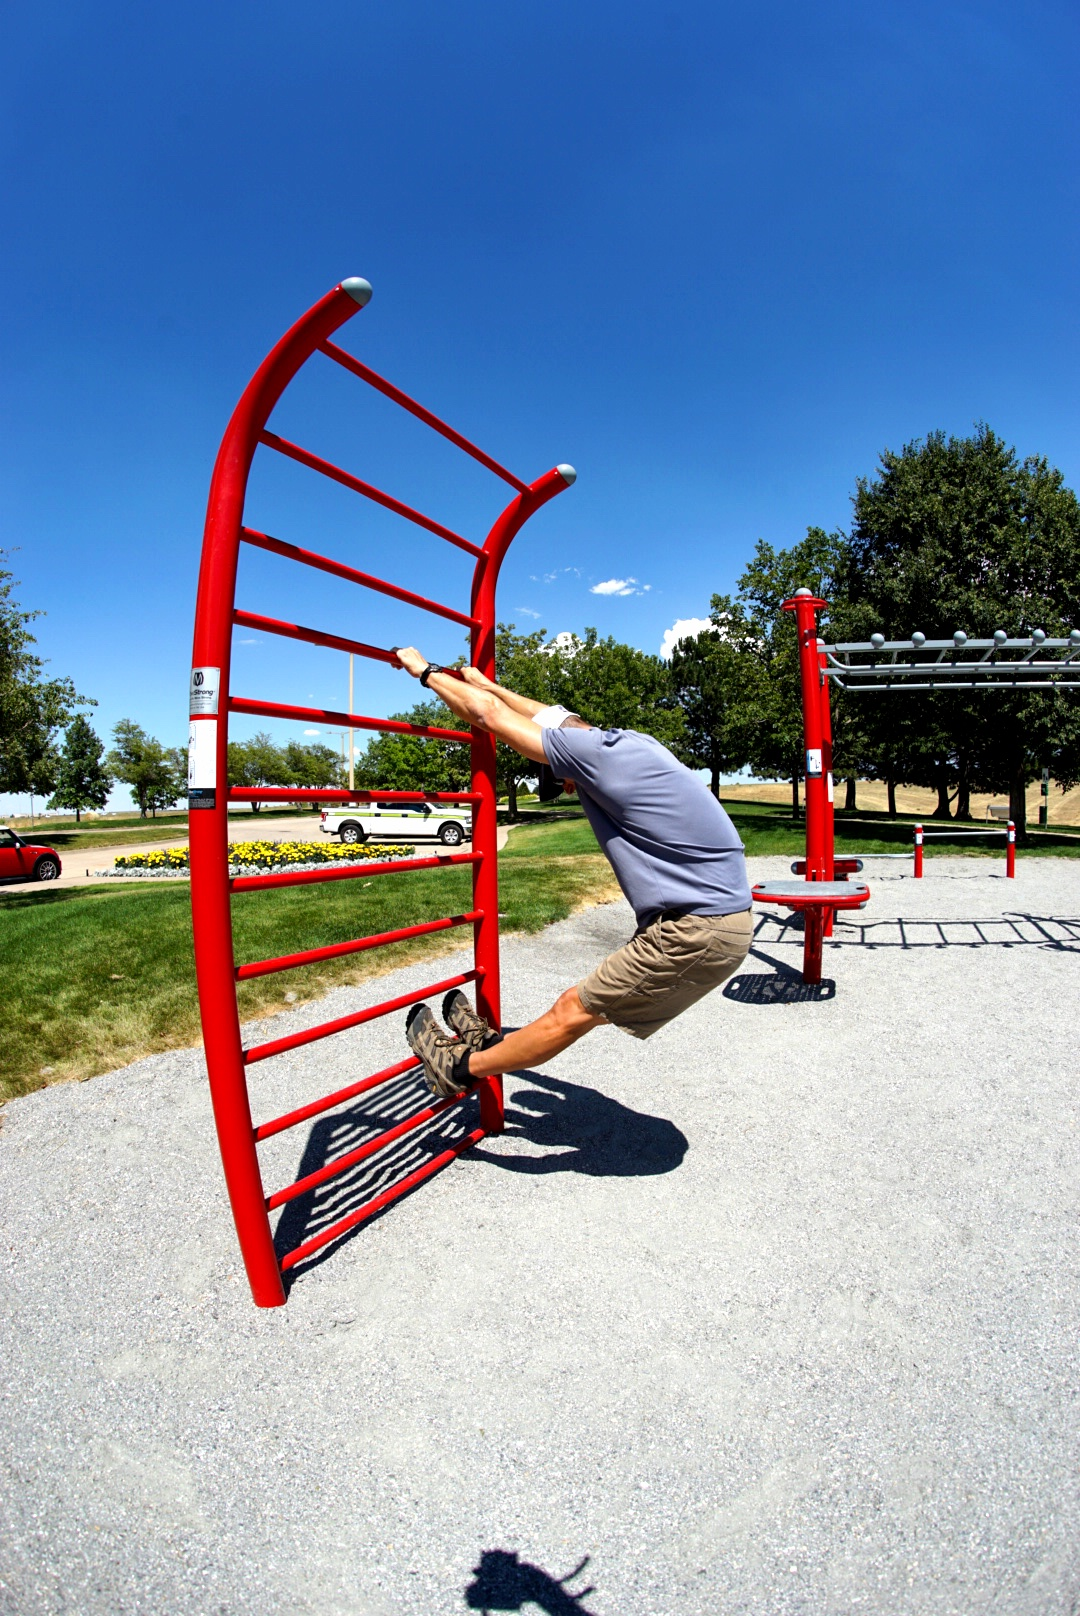 Outdoor Stall Bars for stretching